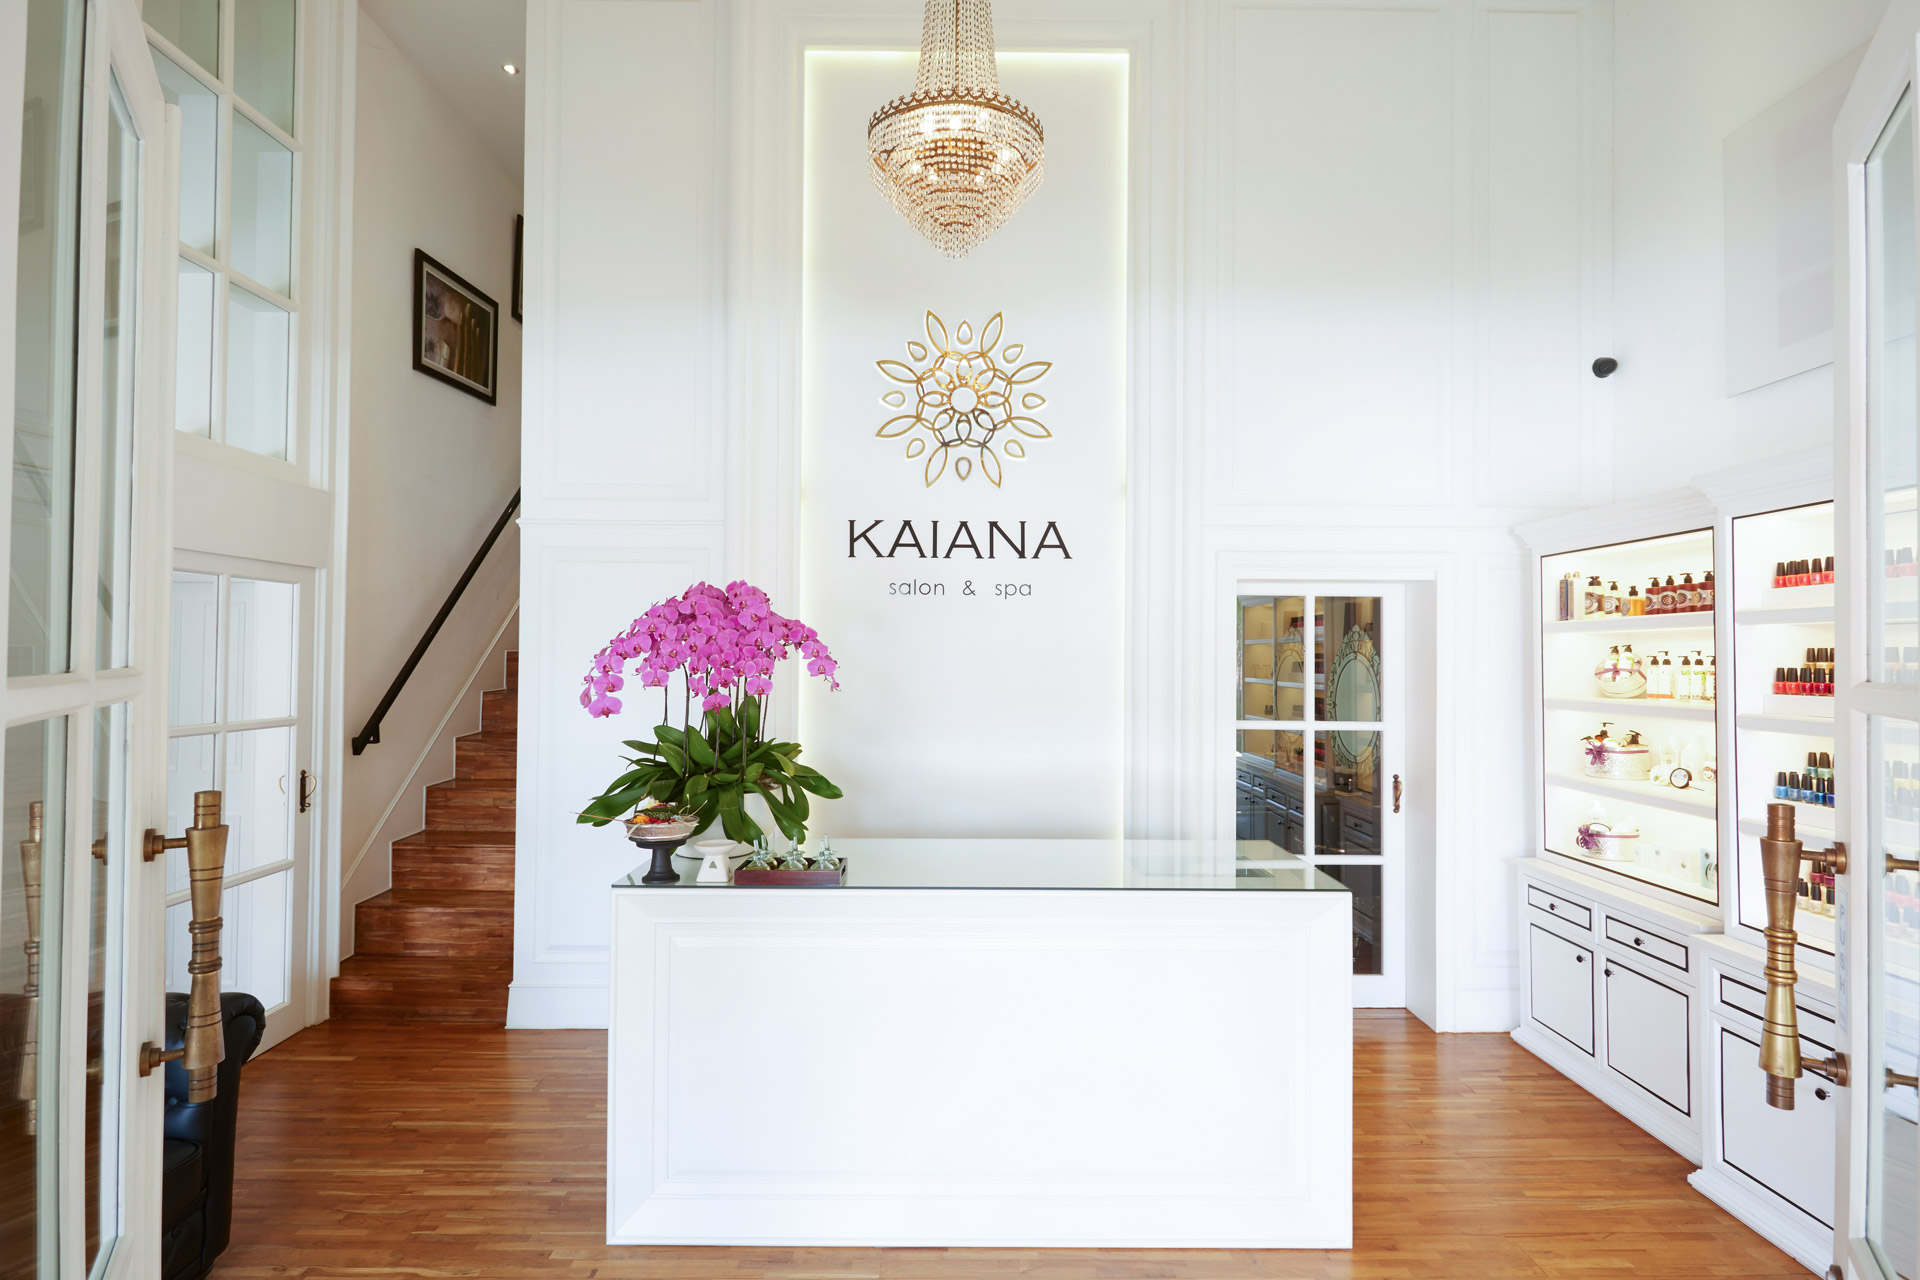 Kaiana Salon & Spa